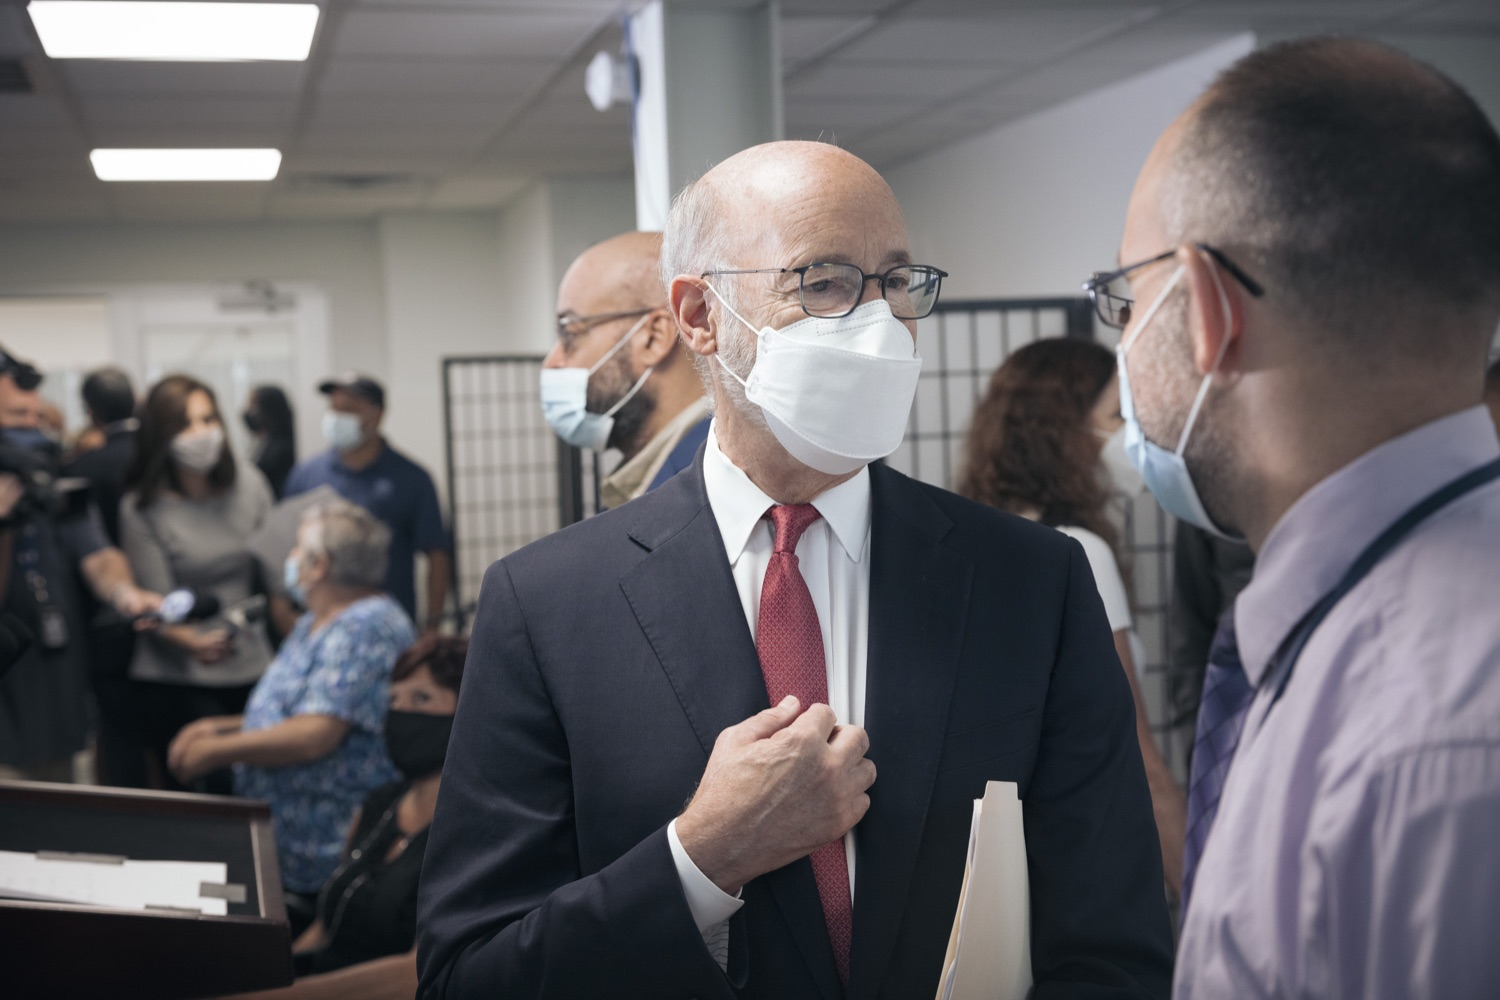 """<a href=""""https://filesource.wostreaming.net/commonwealthofpa/photo/19129_gov_opioidEpidemic_dz_047.jpg"""" target=""""_blank"""">⇣Download Photo<br></a>Pennsylvania Governor Tom Wolf speaking with community leaders.  Governor Tom Wolf, state leaders, and community partners today visited the Philadelphia neighborhood, Kensington, and Esperanza Health Center to discuss the devastating affects of the opioid epidemic and what can be done to help curb the increase in overdoses throughout the commonwealth.  Philadelphia, PA. - September 16, 2021"""